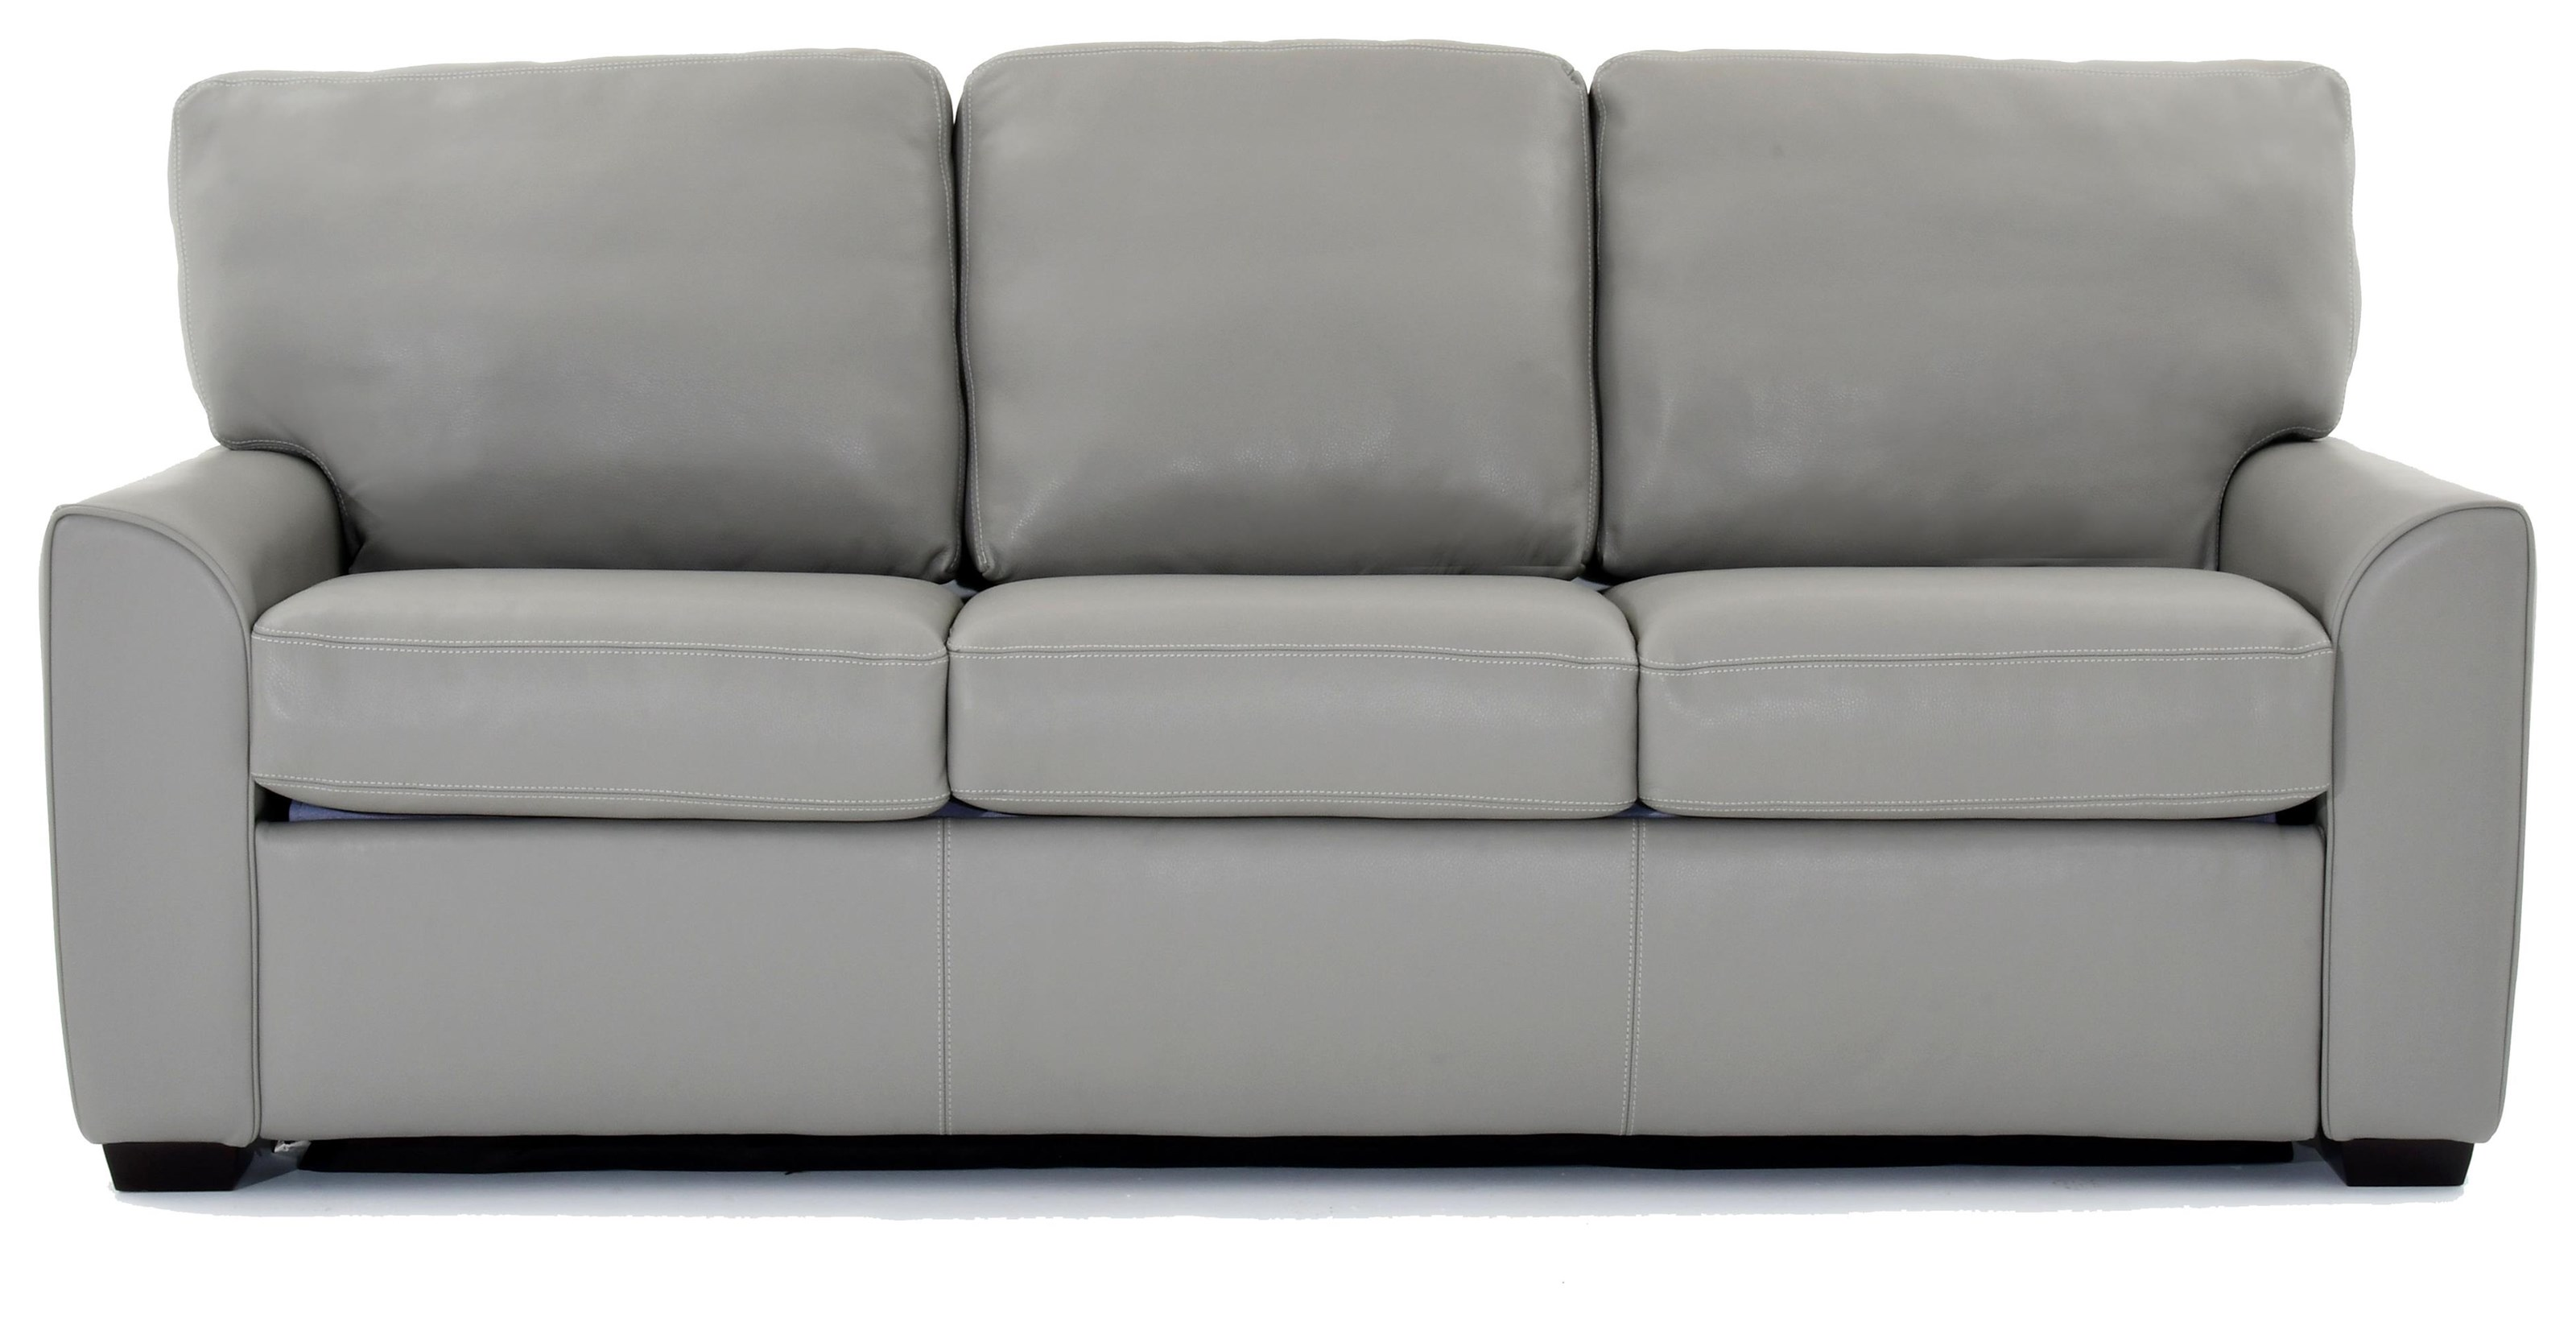 American Leather Klein KLE SO3 QP Queen Size Comfort